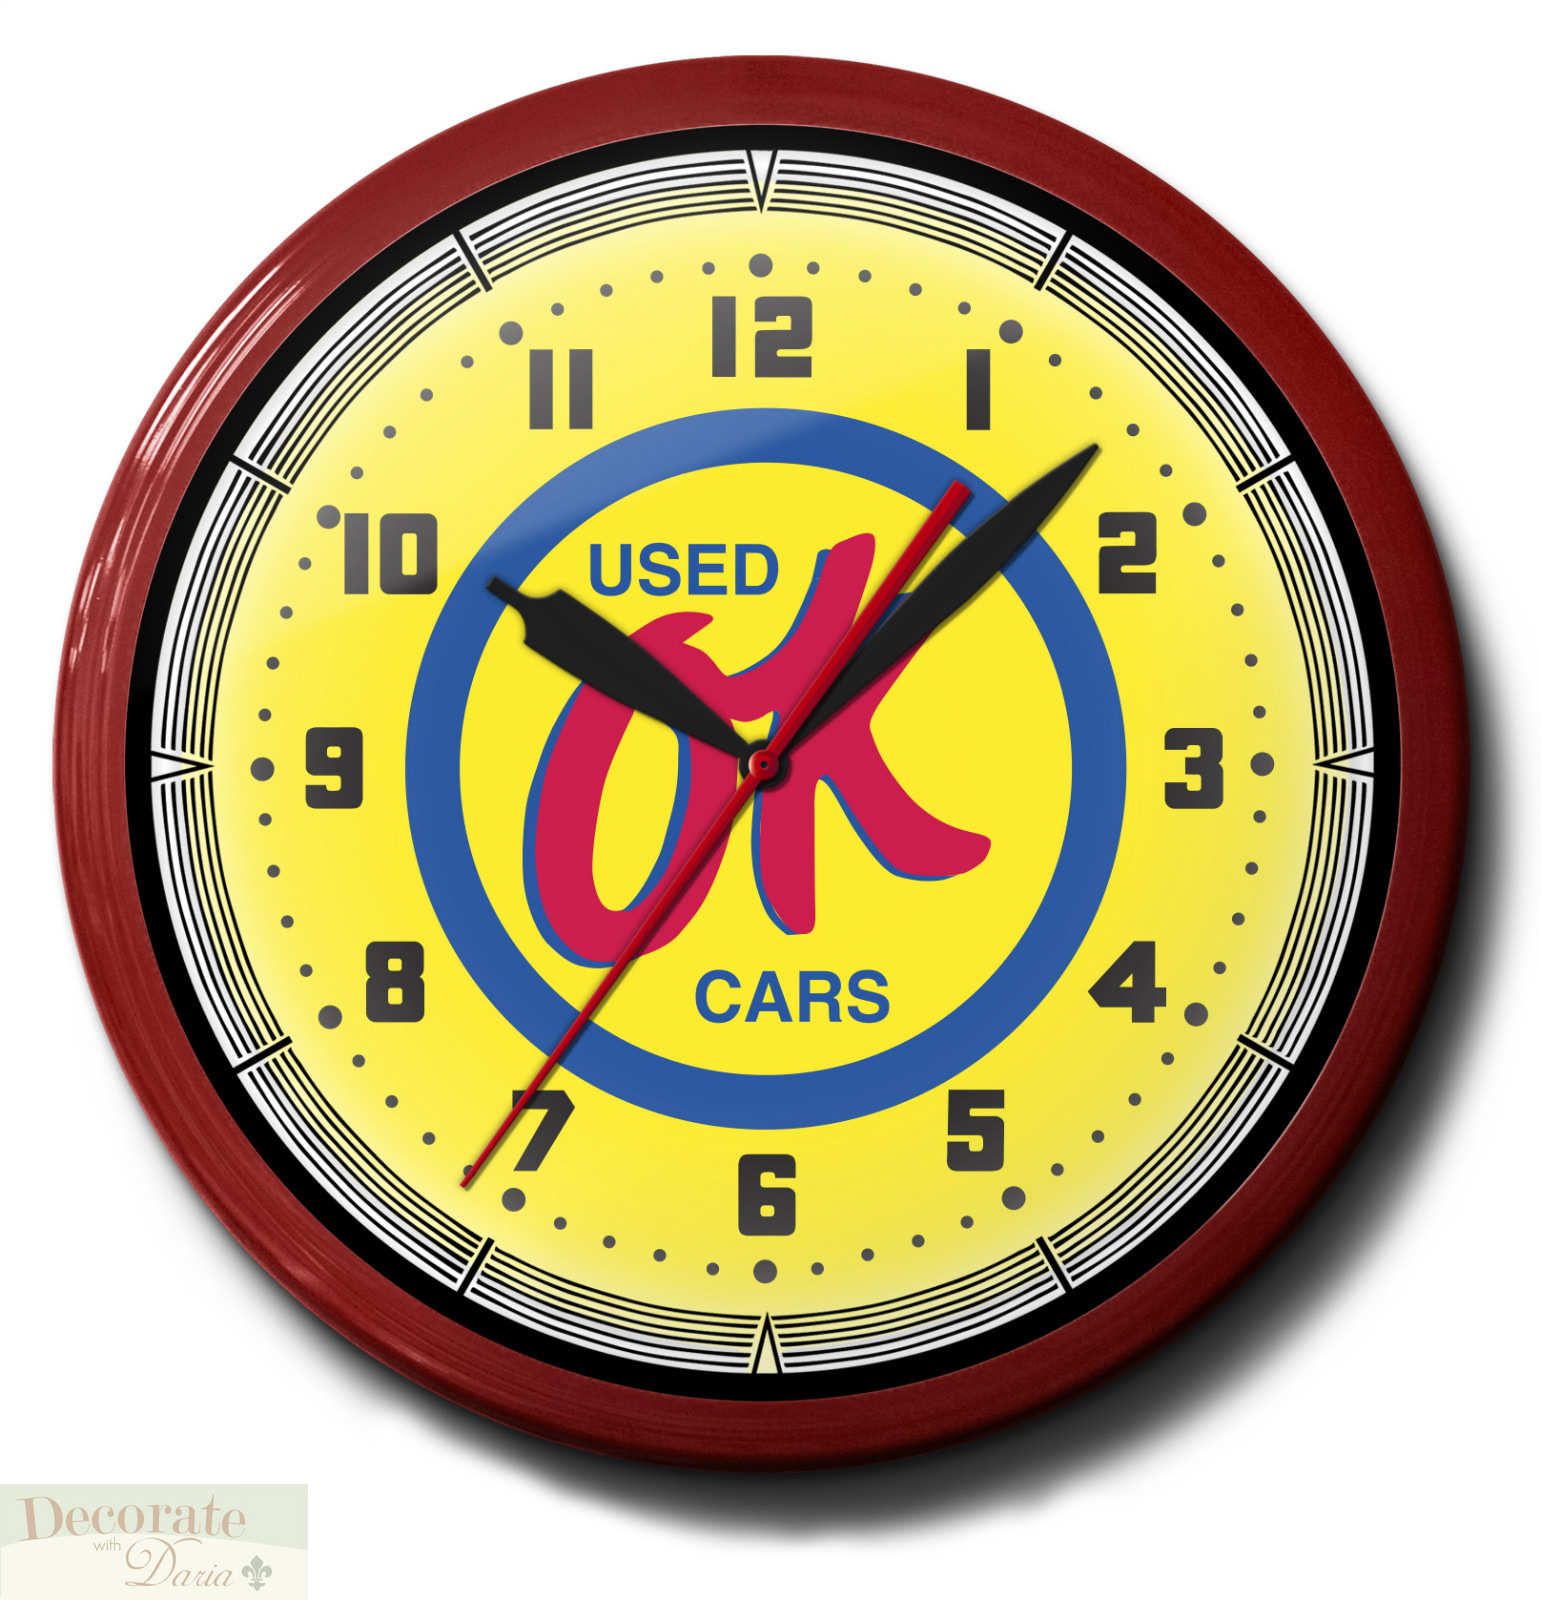 OK USED CARS Neon Wall Clock 20 Inch Made in the U